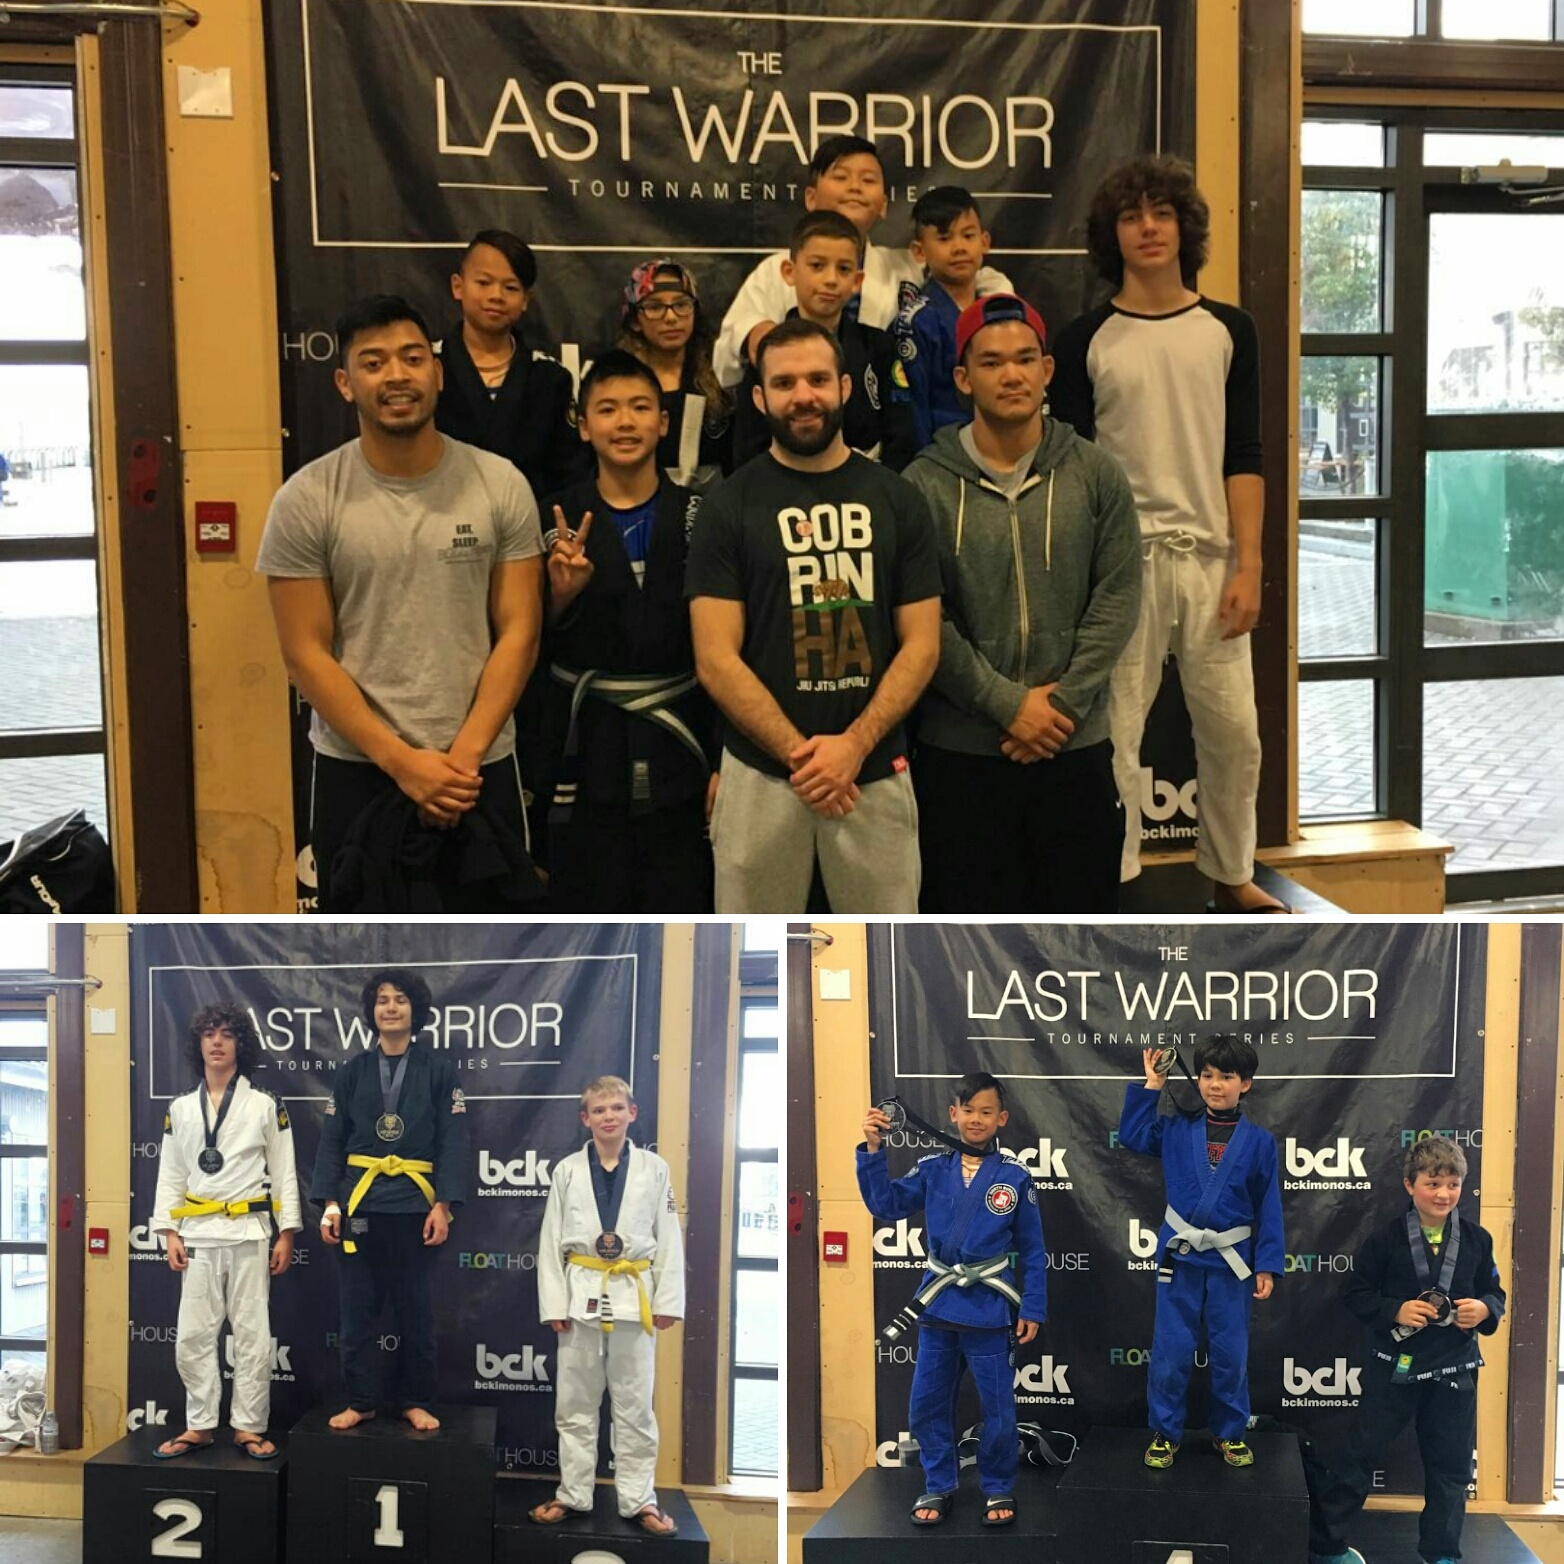 The Last Warrior Tournament